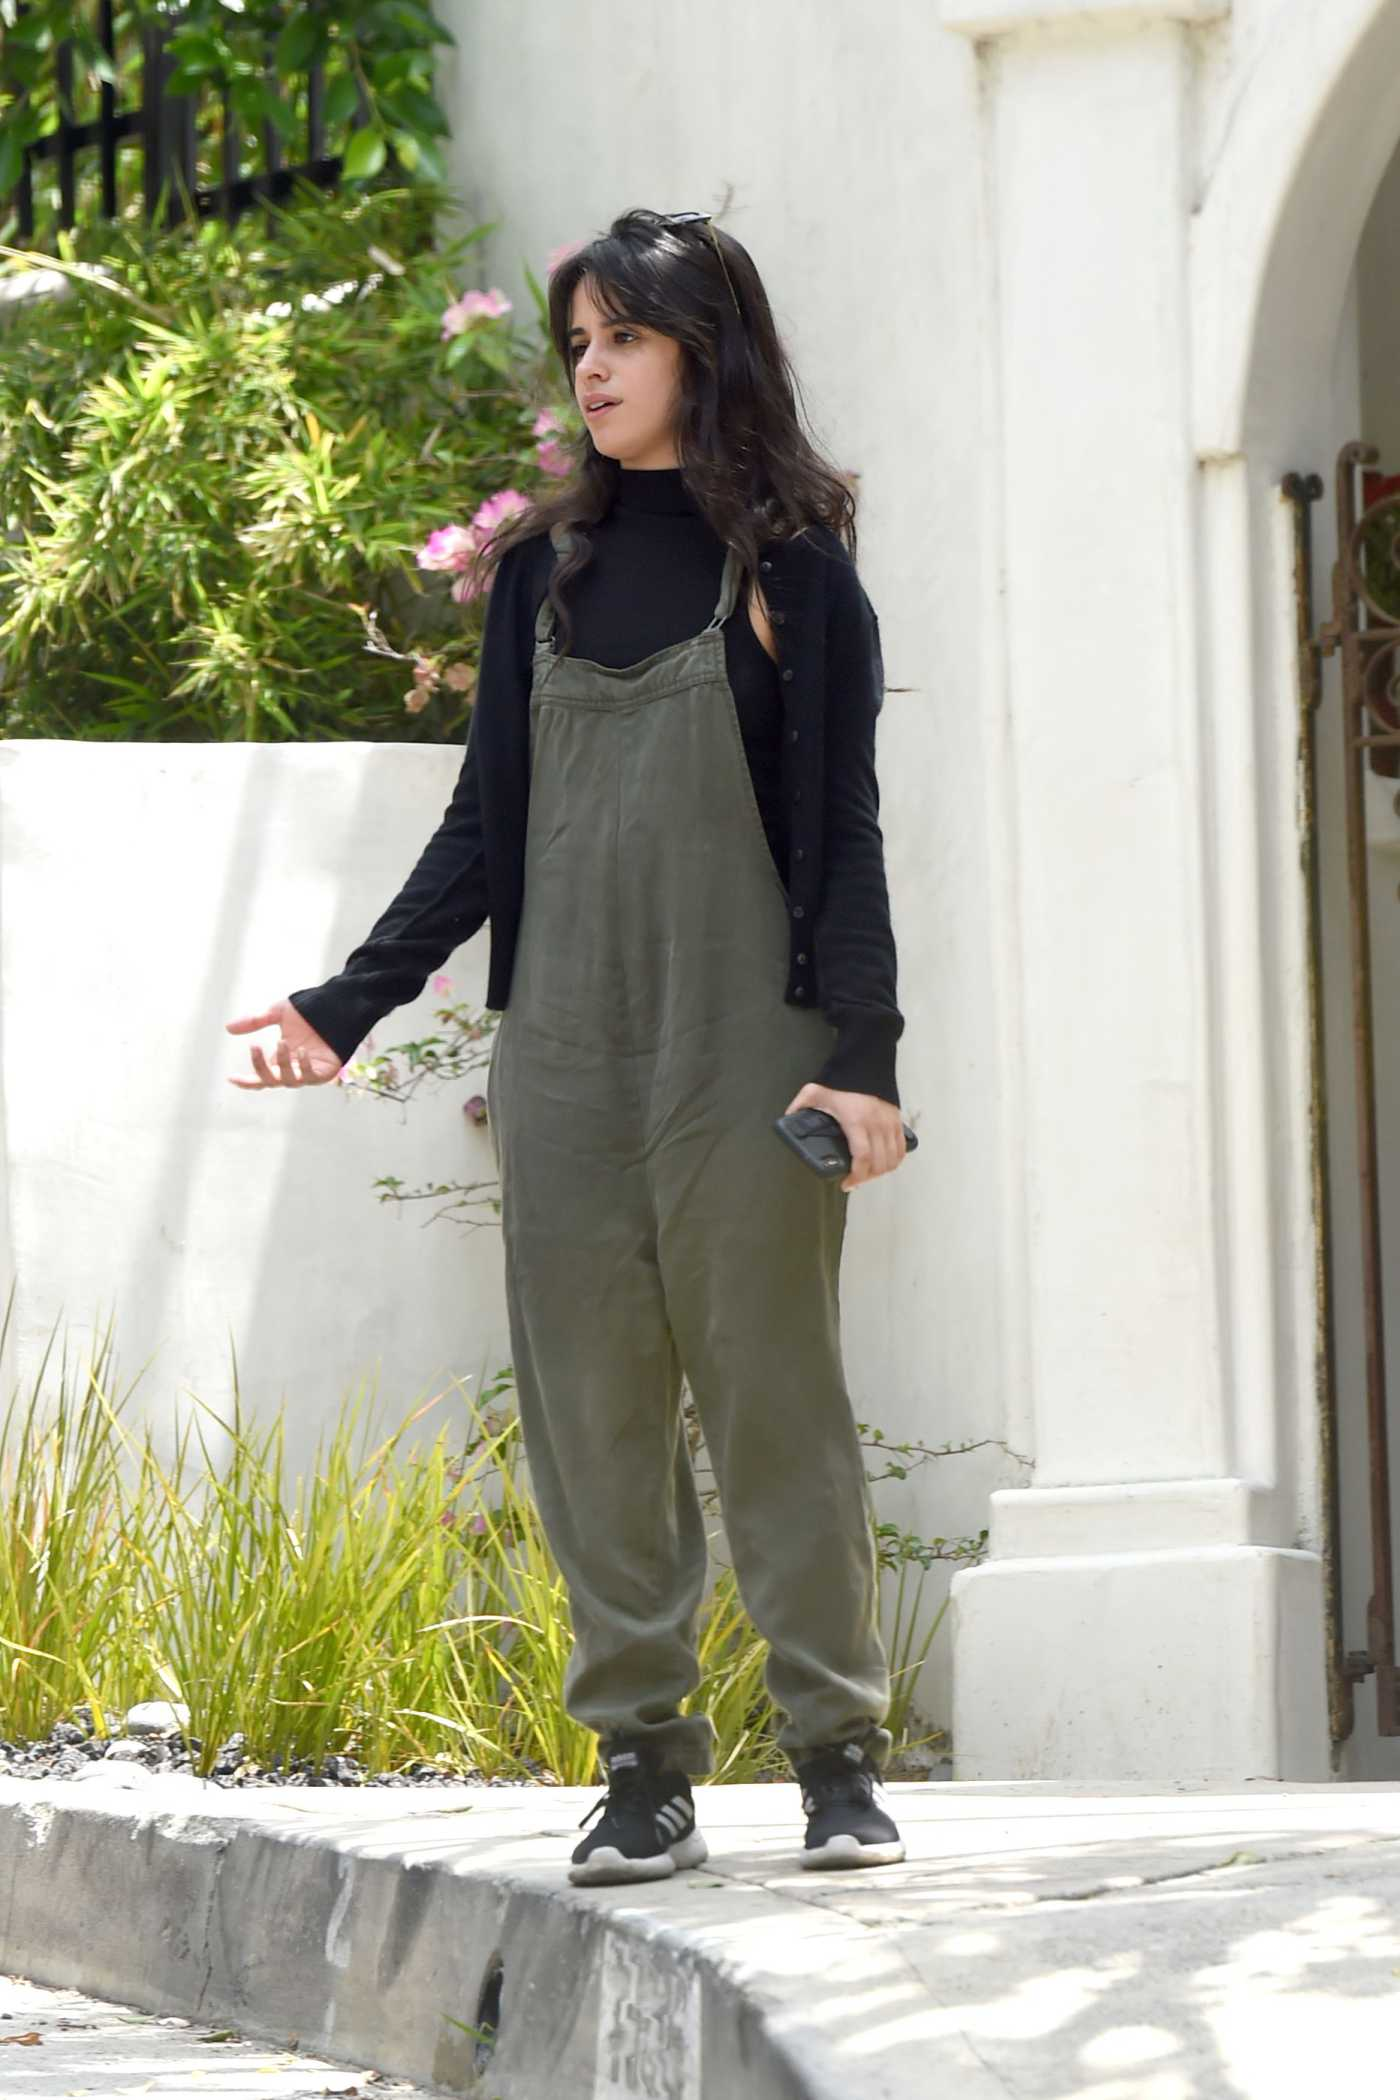 Camila Cabello in a Green Jumpsuit Was Seen Out in LA 06/07/2019